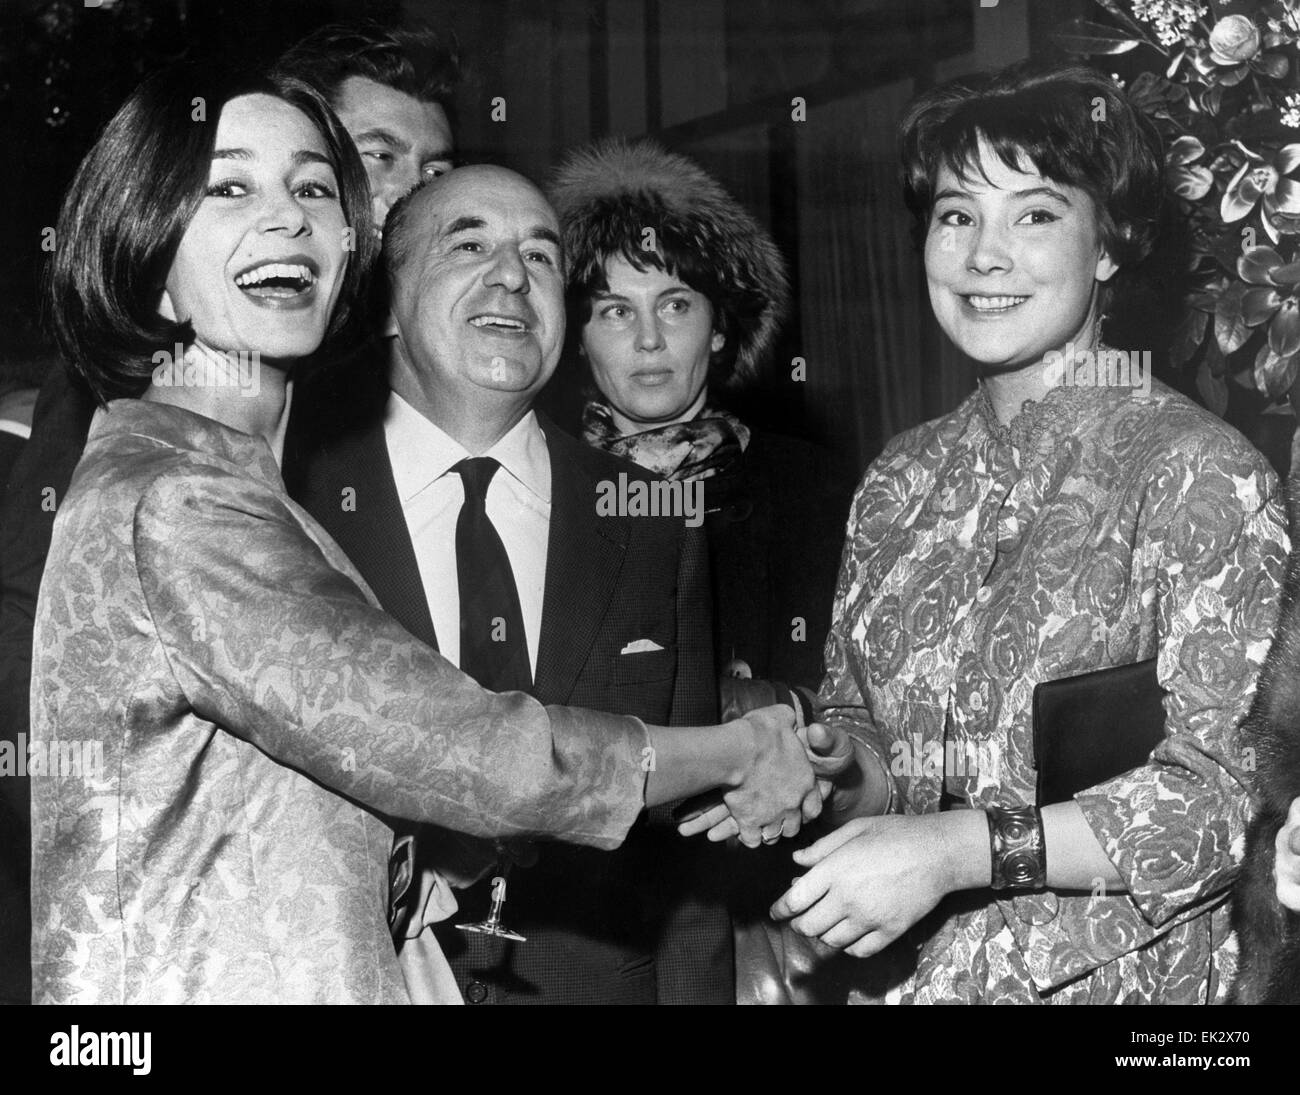 France paris french actress emmanuelle riva l and soviet actress france paris french actress emmanuelle riva l and soviet actress tatyana samoilova greet each other reproduction m4hsunfo